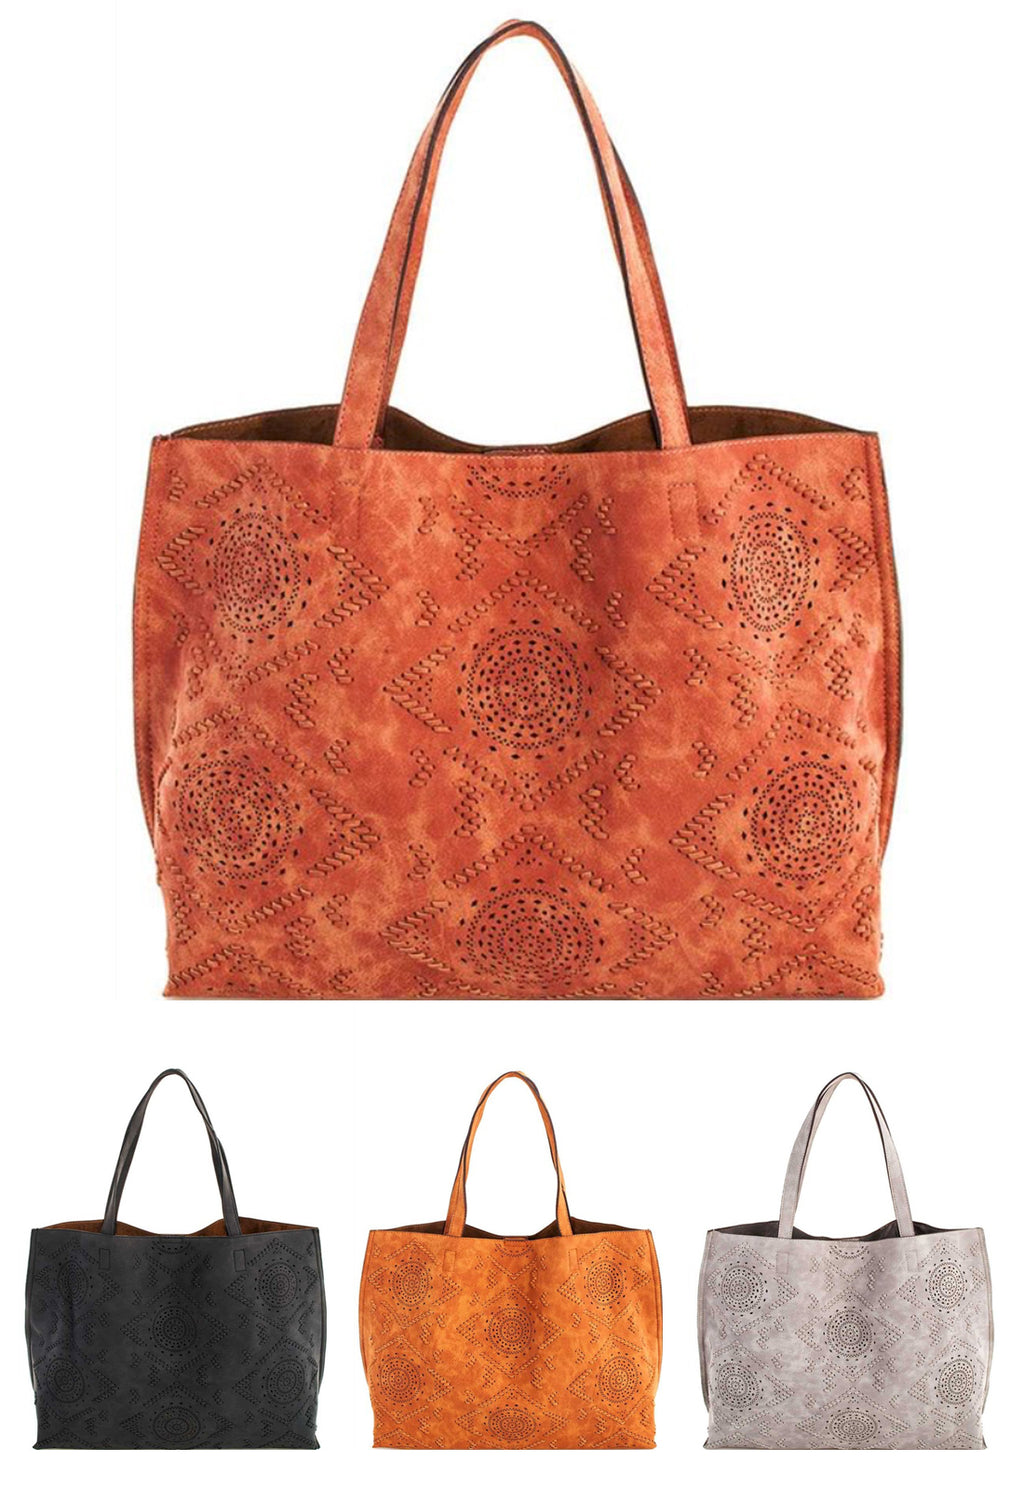 Ladies Vegan Leather Tote with etched design all colors shown. By Street Level